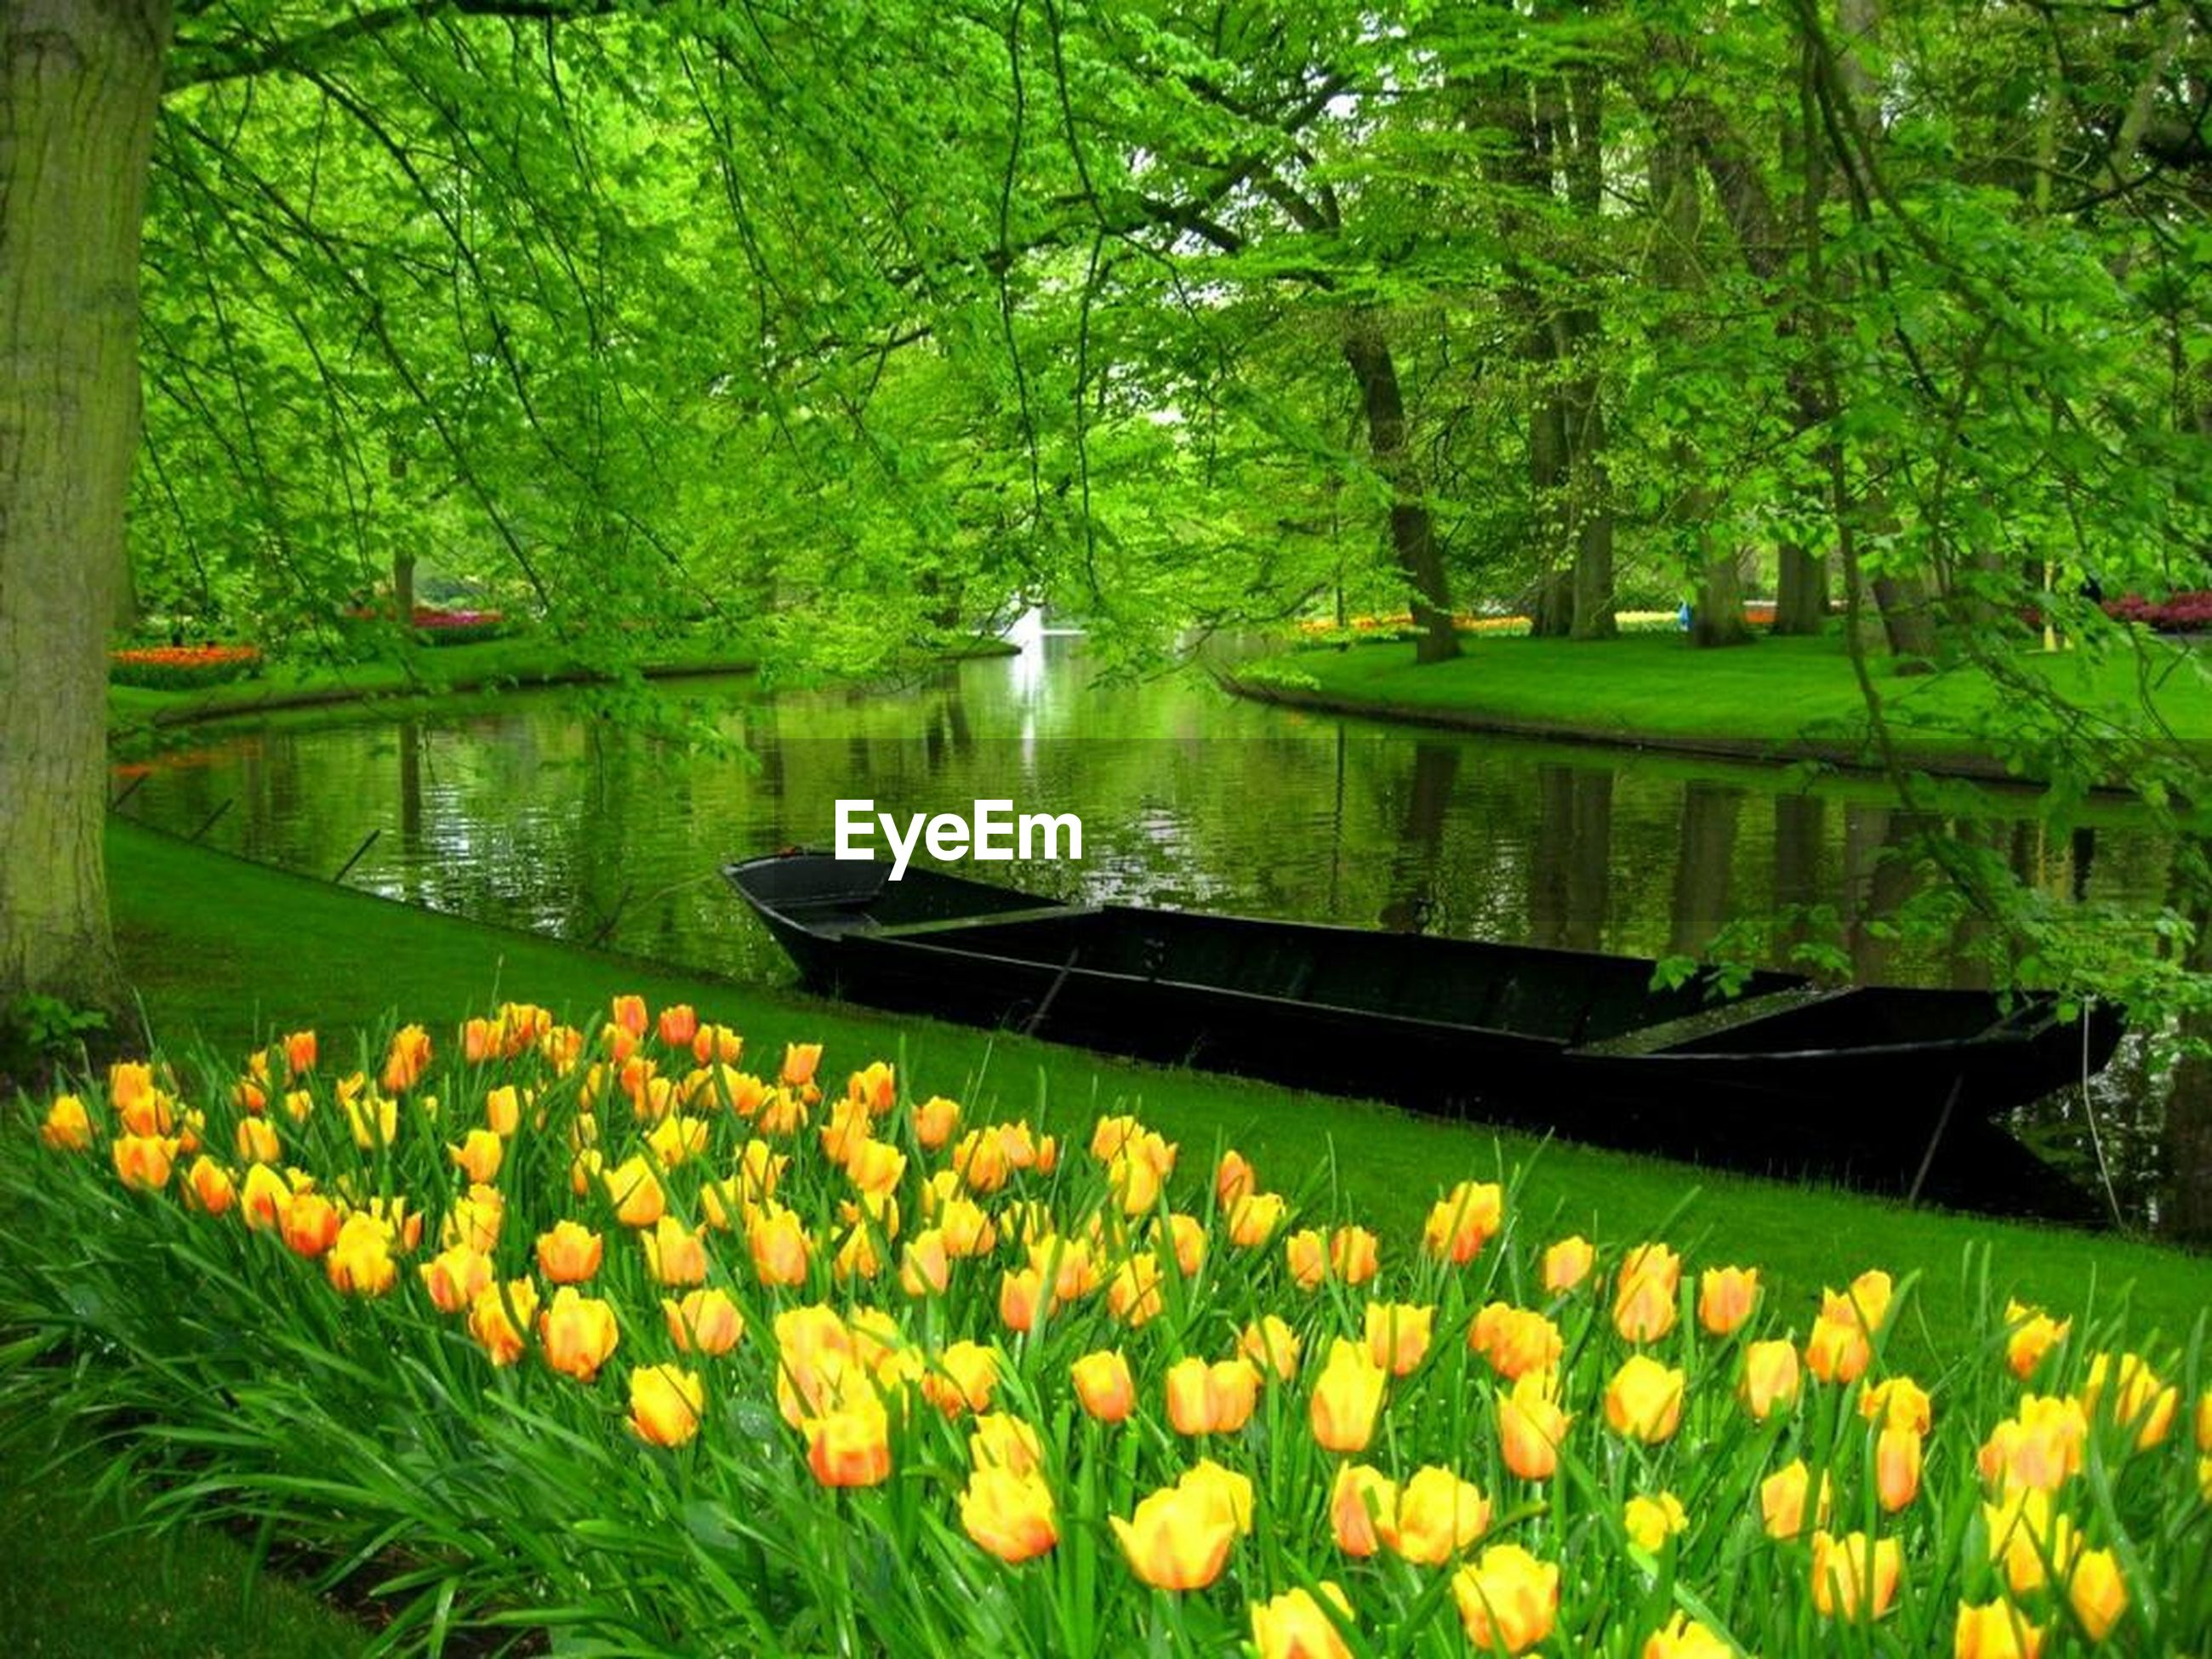 flower, tree, growth, beauty in nature, water, nature, tranquility, lake, tranquil scene, plant, transportation, yellow, reflection, freshness, scenics, green color, park - man made space, outdoors, day, fragility